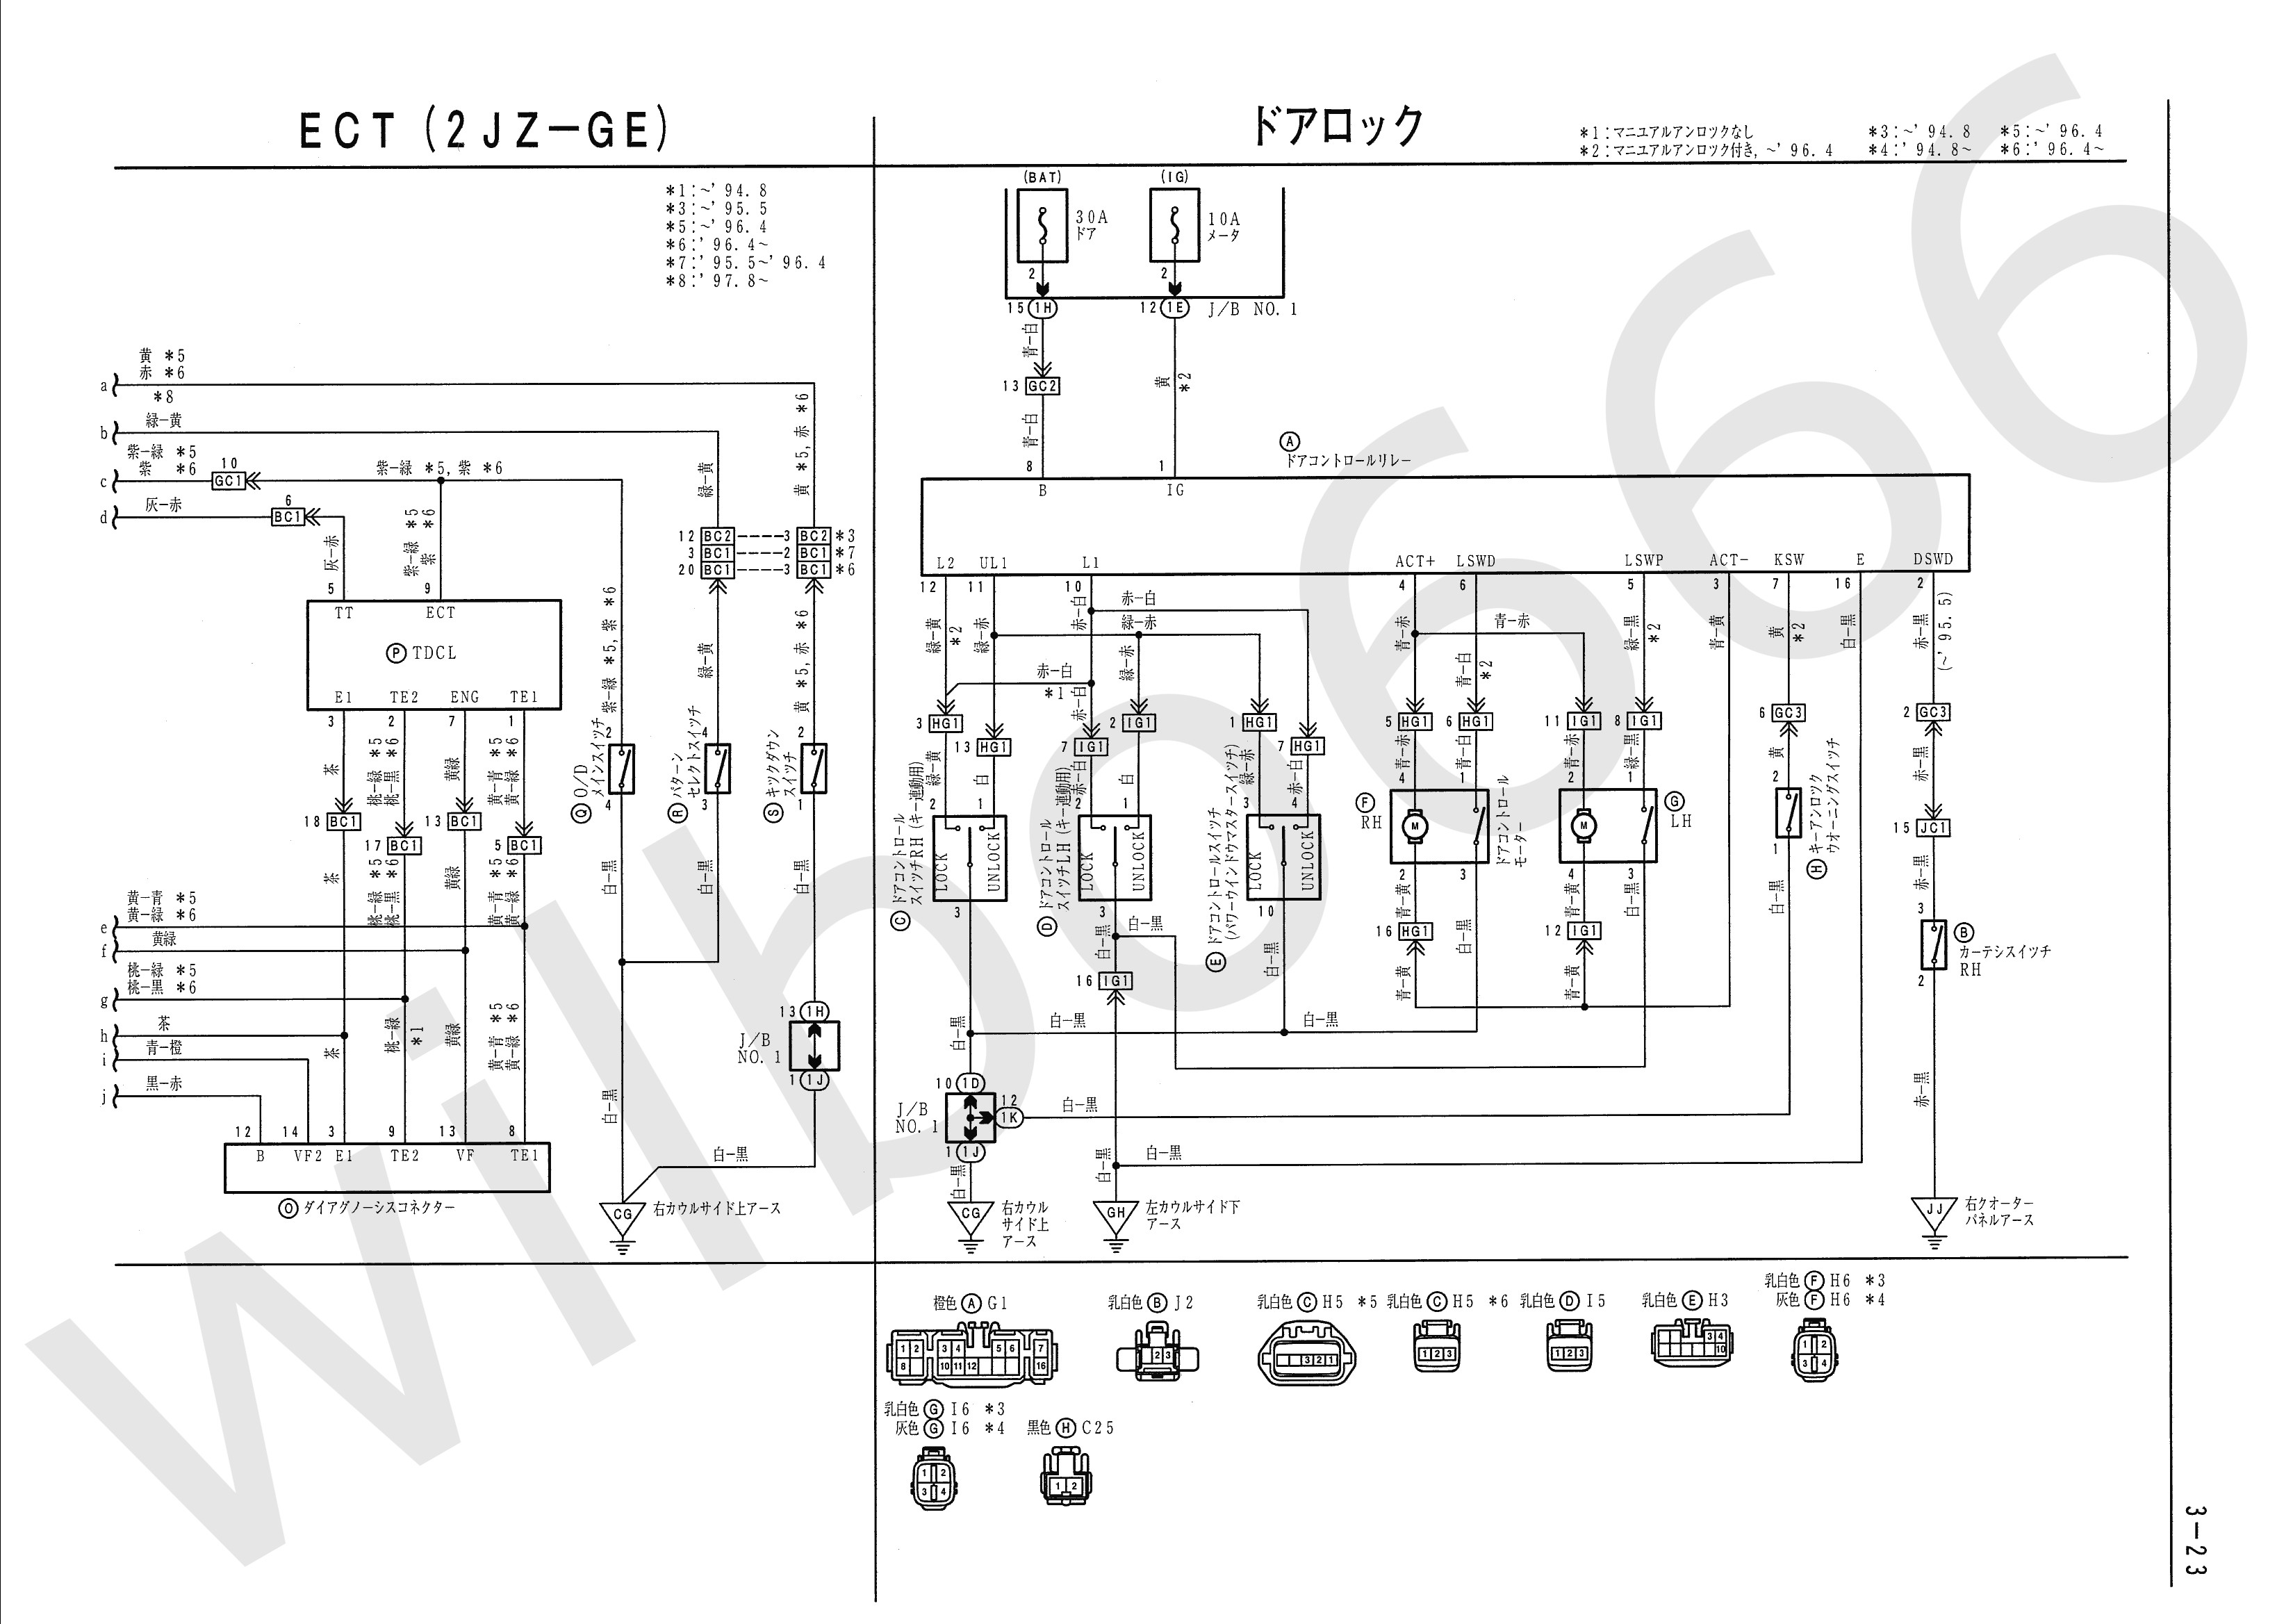 Ge Sensor Wiring Diagram - Liry Of Wiring Diagram • on washing machine schematic diagram, ge washer tools, ge washer oil leak, ge washer timer, ge front load washer diagram, ge washer model whse5240d1ww, ge washer repair guide, ge washer drive shaft, ge top load washer diagram, ge washer disassembly, ge washer manual, ge profile dishwasher diagram, ge washer motor, ge washer model numbers, ge washer parts, ge washer agitator repair, ge washer fuse, ge washer hose, ge spacemaker microwave parts diagram, ge schematic diagrams,